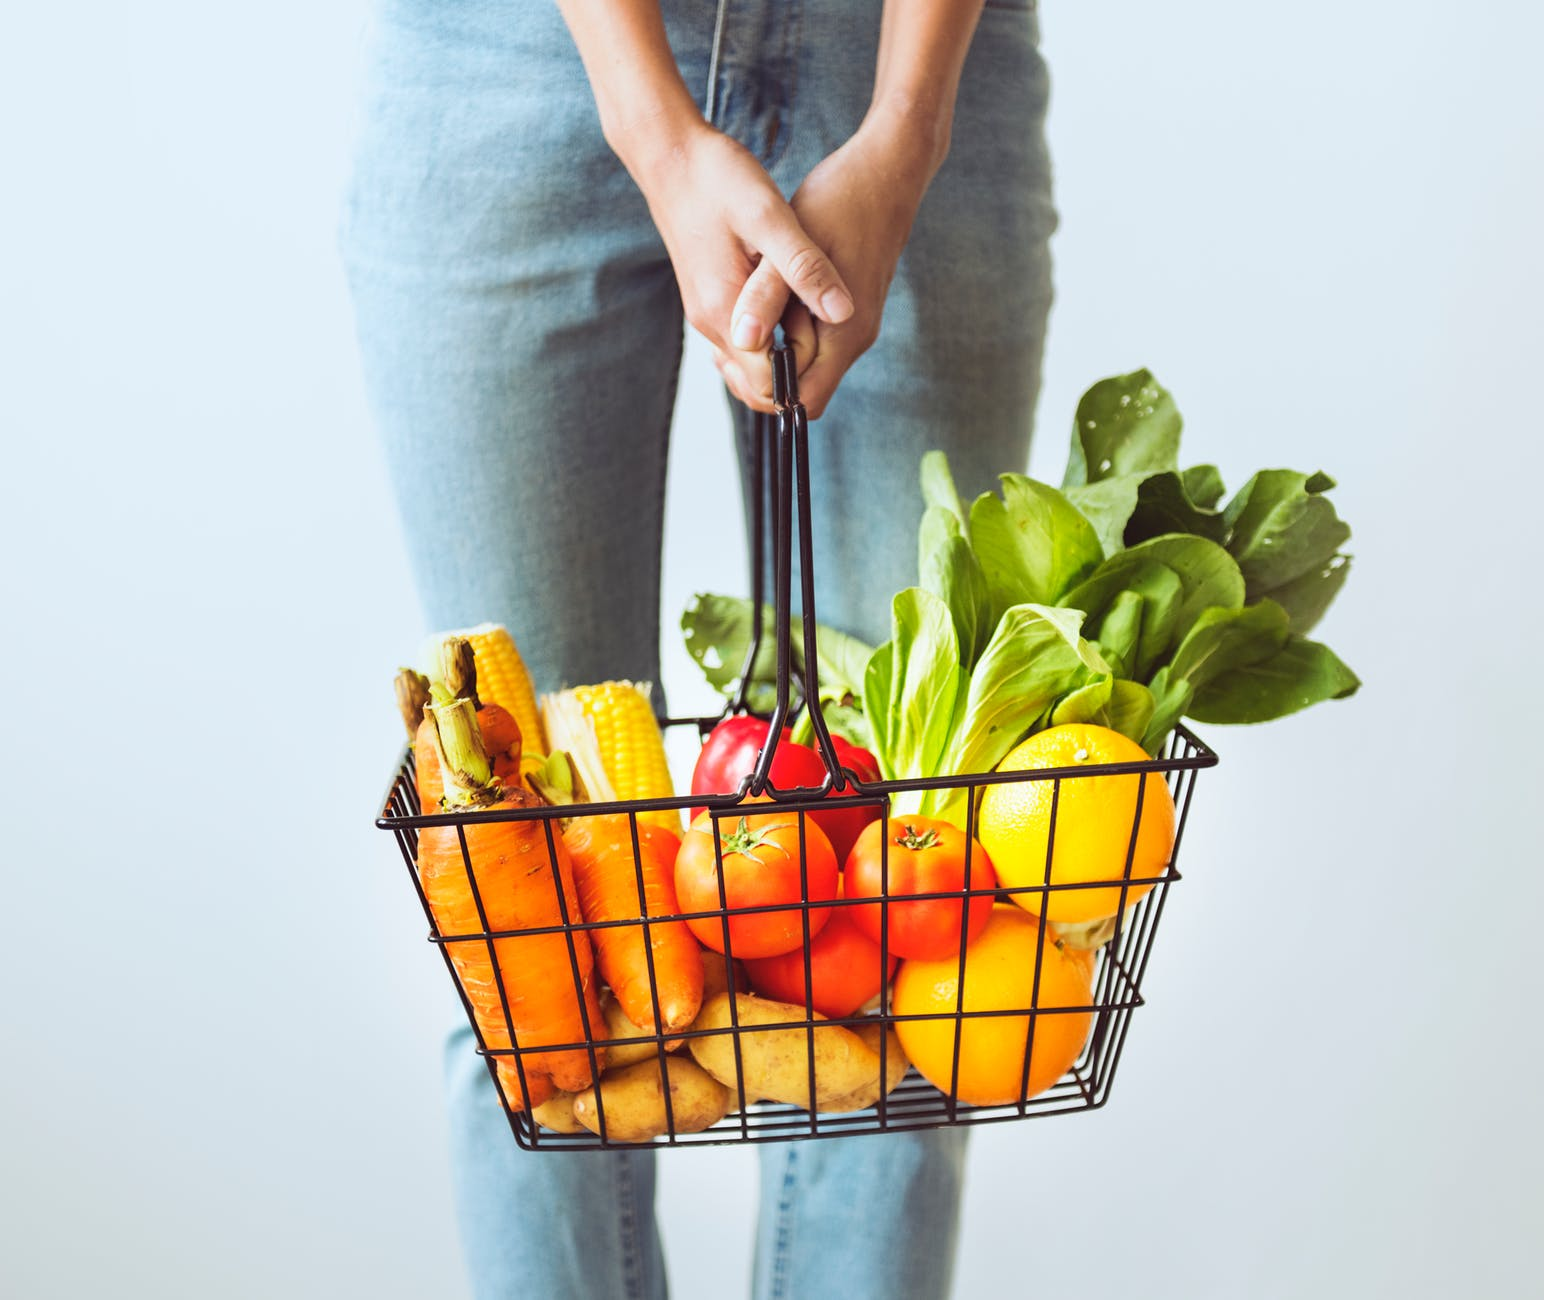 person carrying basket of vegetables